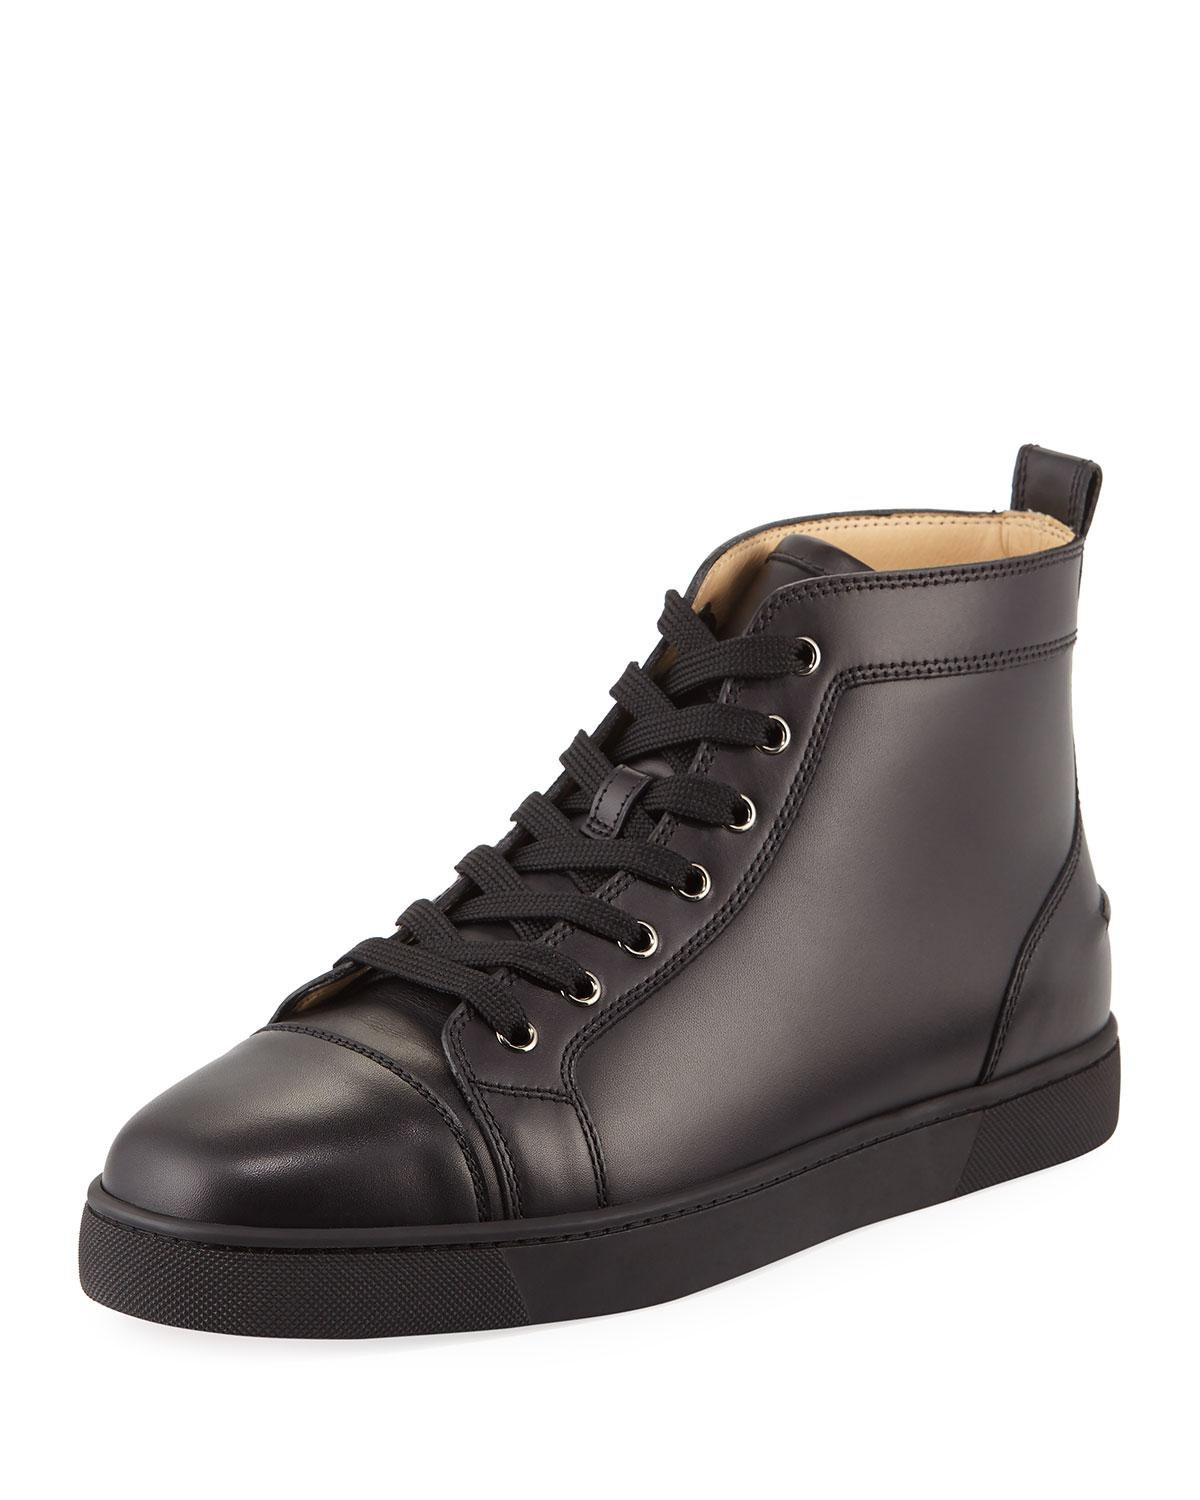 info for 421da 9ca9d Black Men's Louis Leather High-top Sneakers